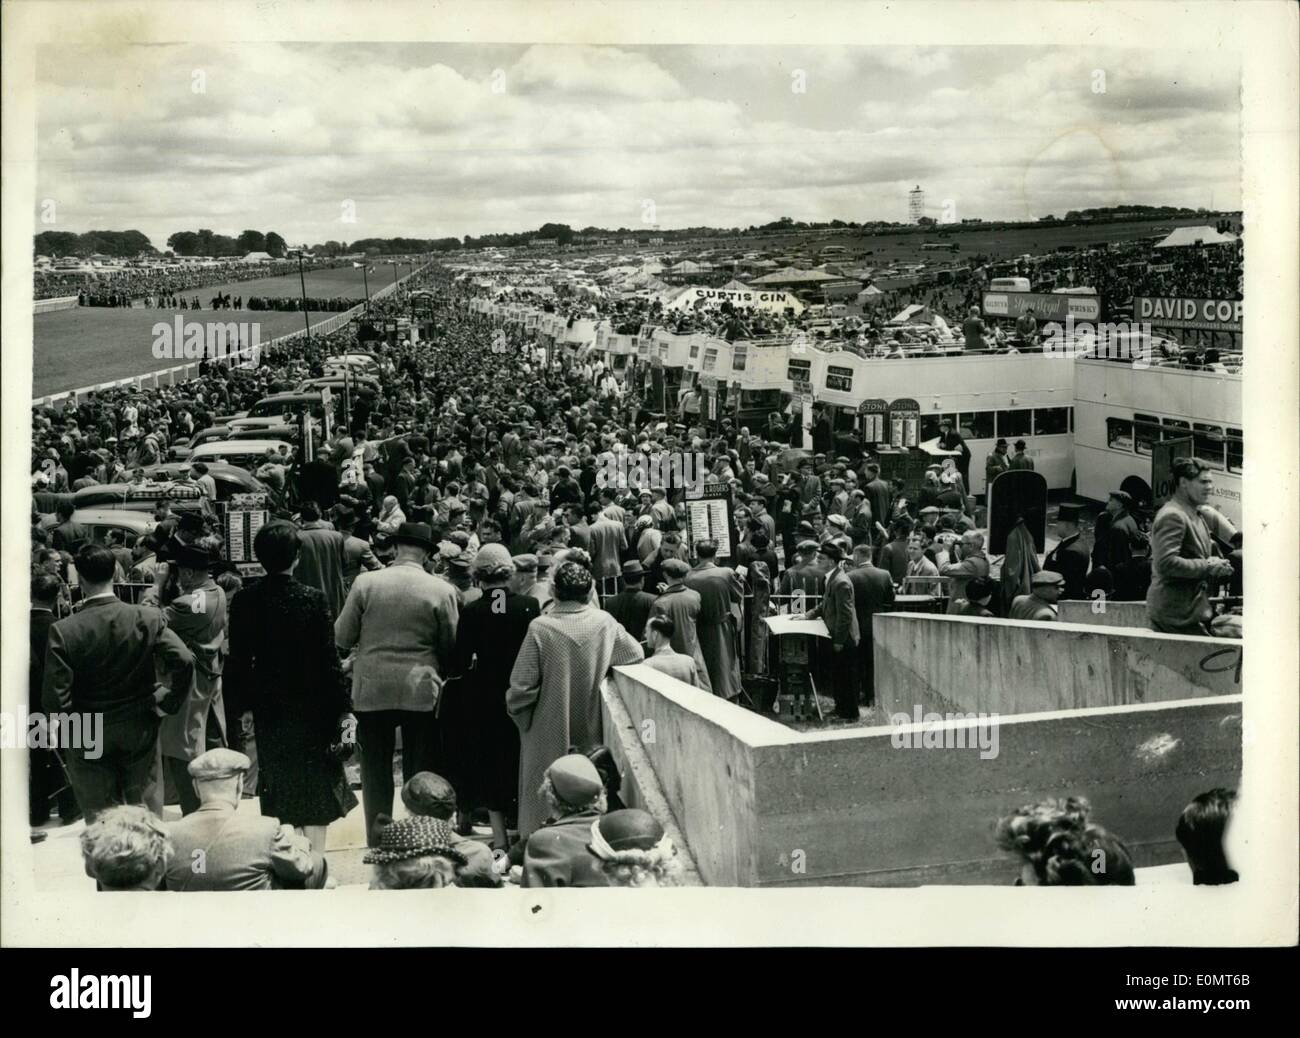 Jun. 06, 1956 - Derby Day At Epsom. General View Of The Crowds: Phot Shows General view showing part of the west crowd - with the bus and coach grandstands - at Epsom this afternoon. - Stock Image